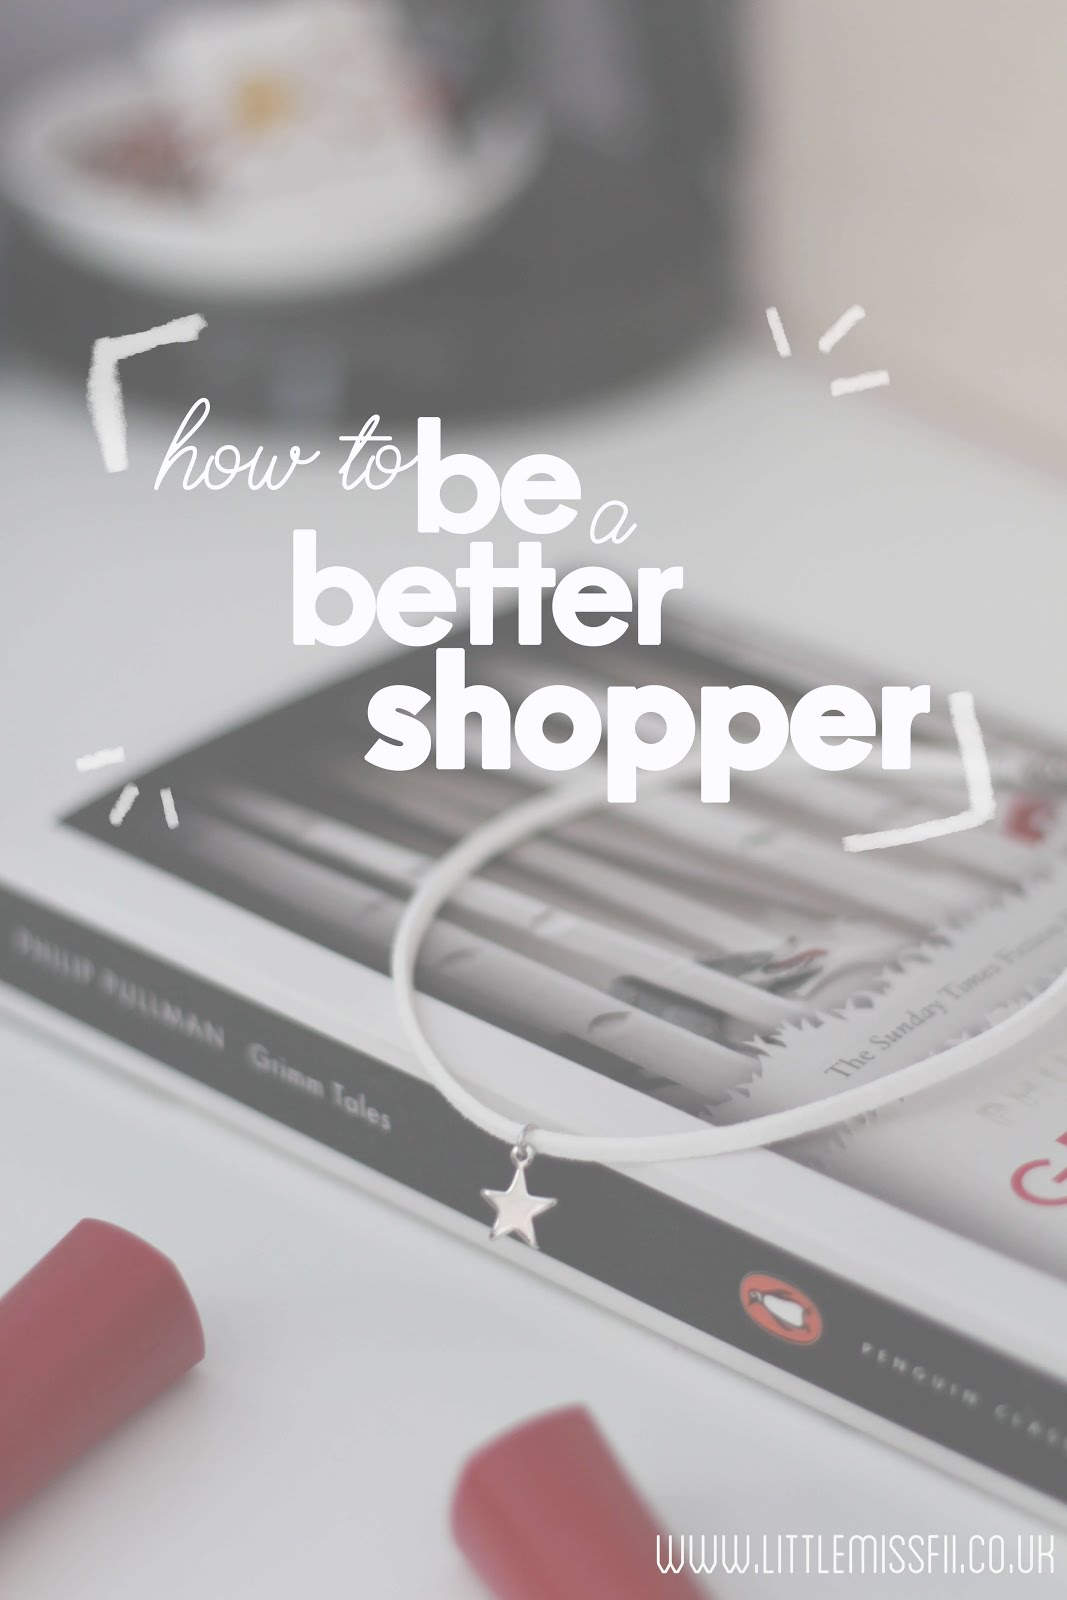 how to be a better shopper